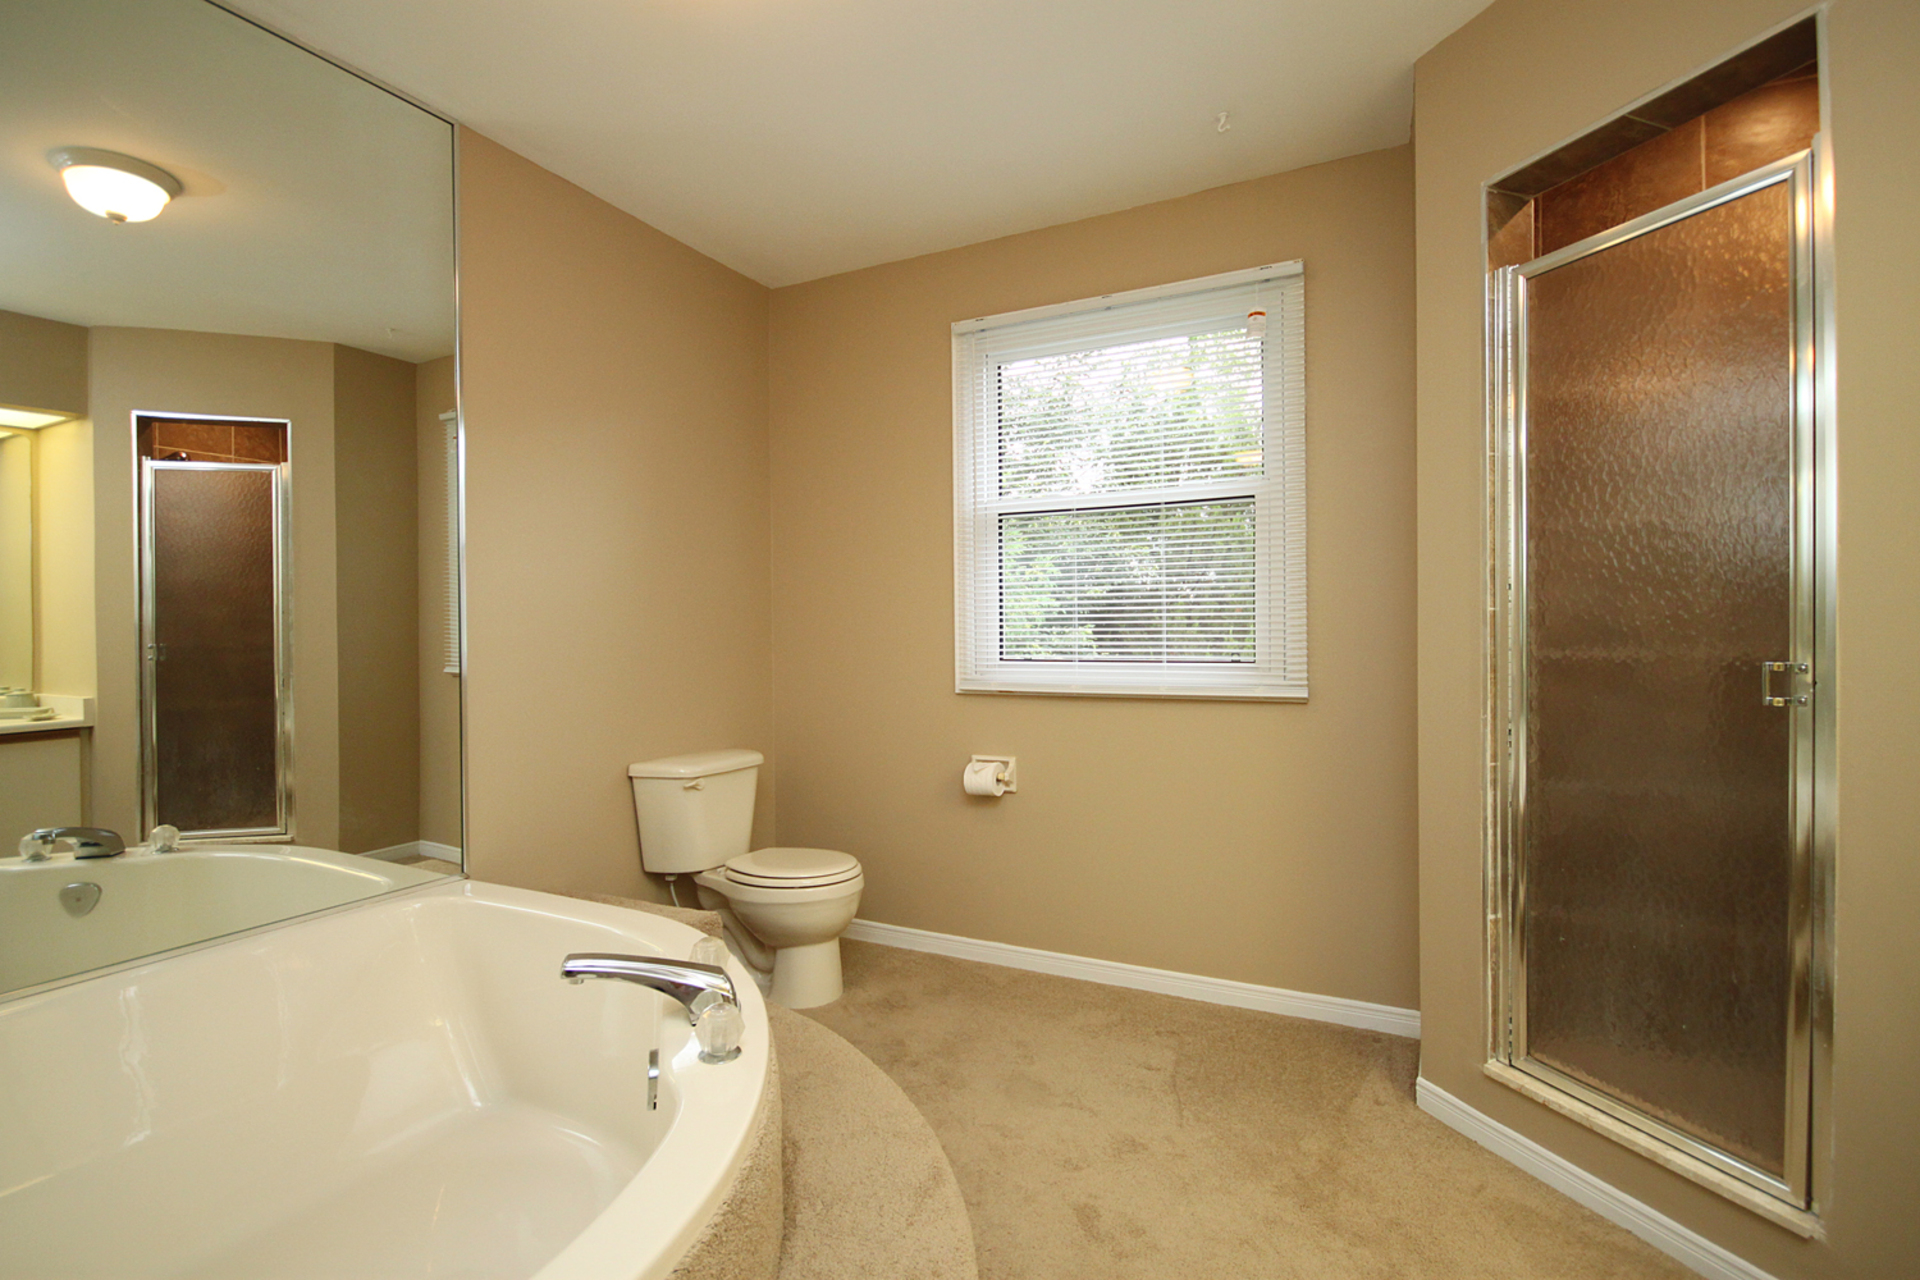 4 Piece Ensuite Bathroom at 1182 Maple Gate Road, Liverpool, Pickering